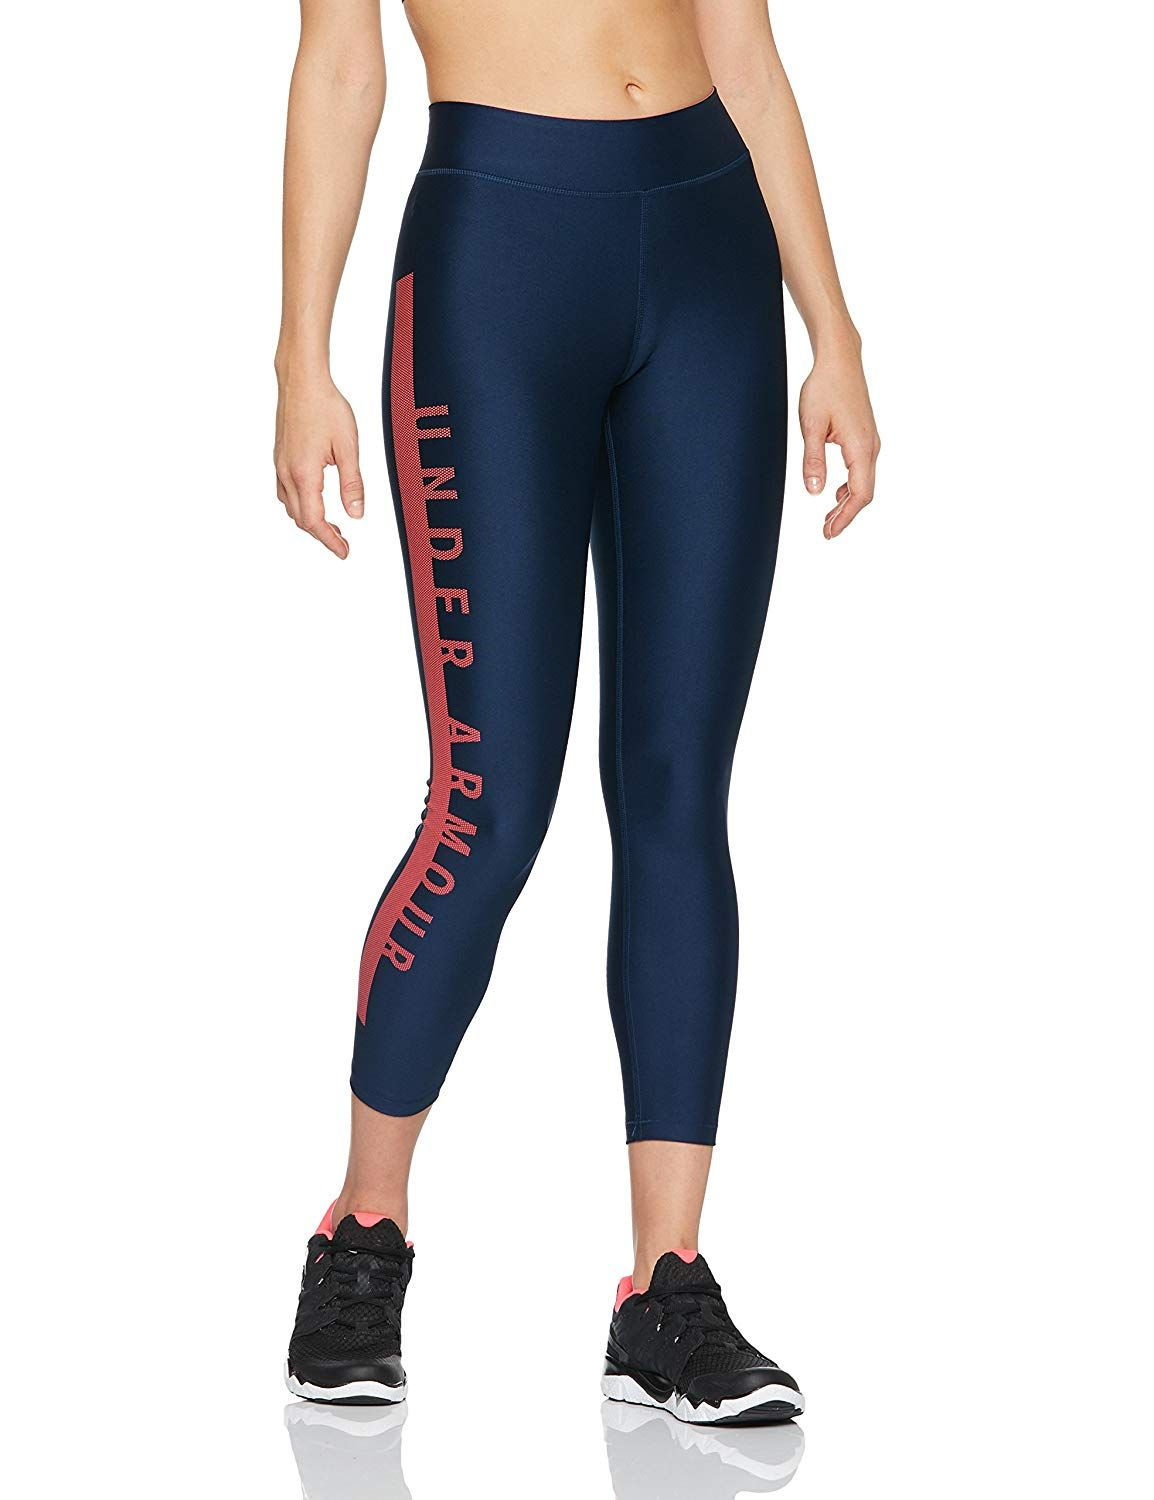 Under Armour Hg Armr Ankle Cp Women s Capri £15.00 - £191.58 Sale  Lower  price available on select options  UnderArmour  leggings ee1c2099ad